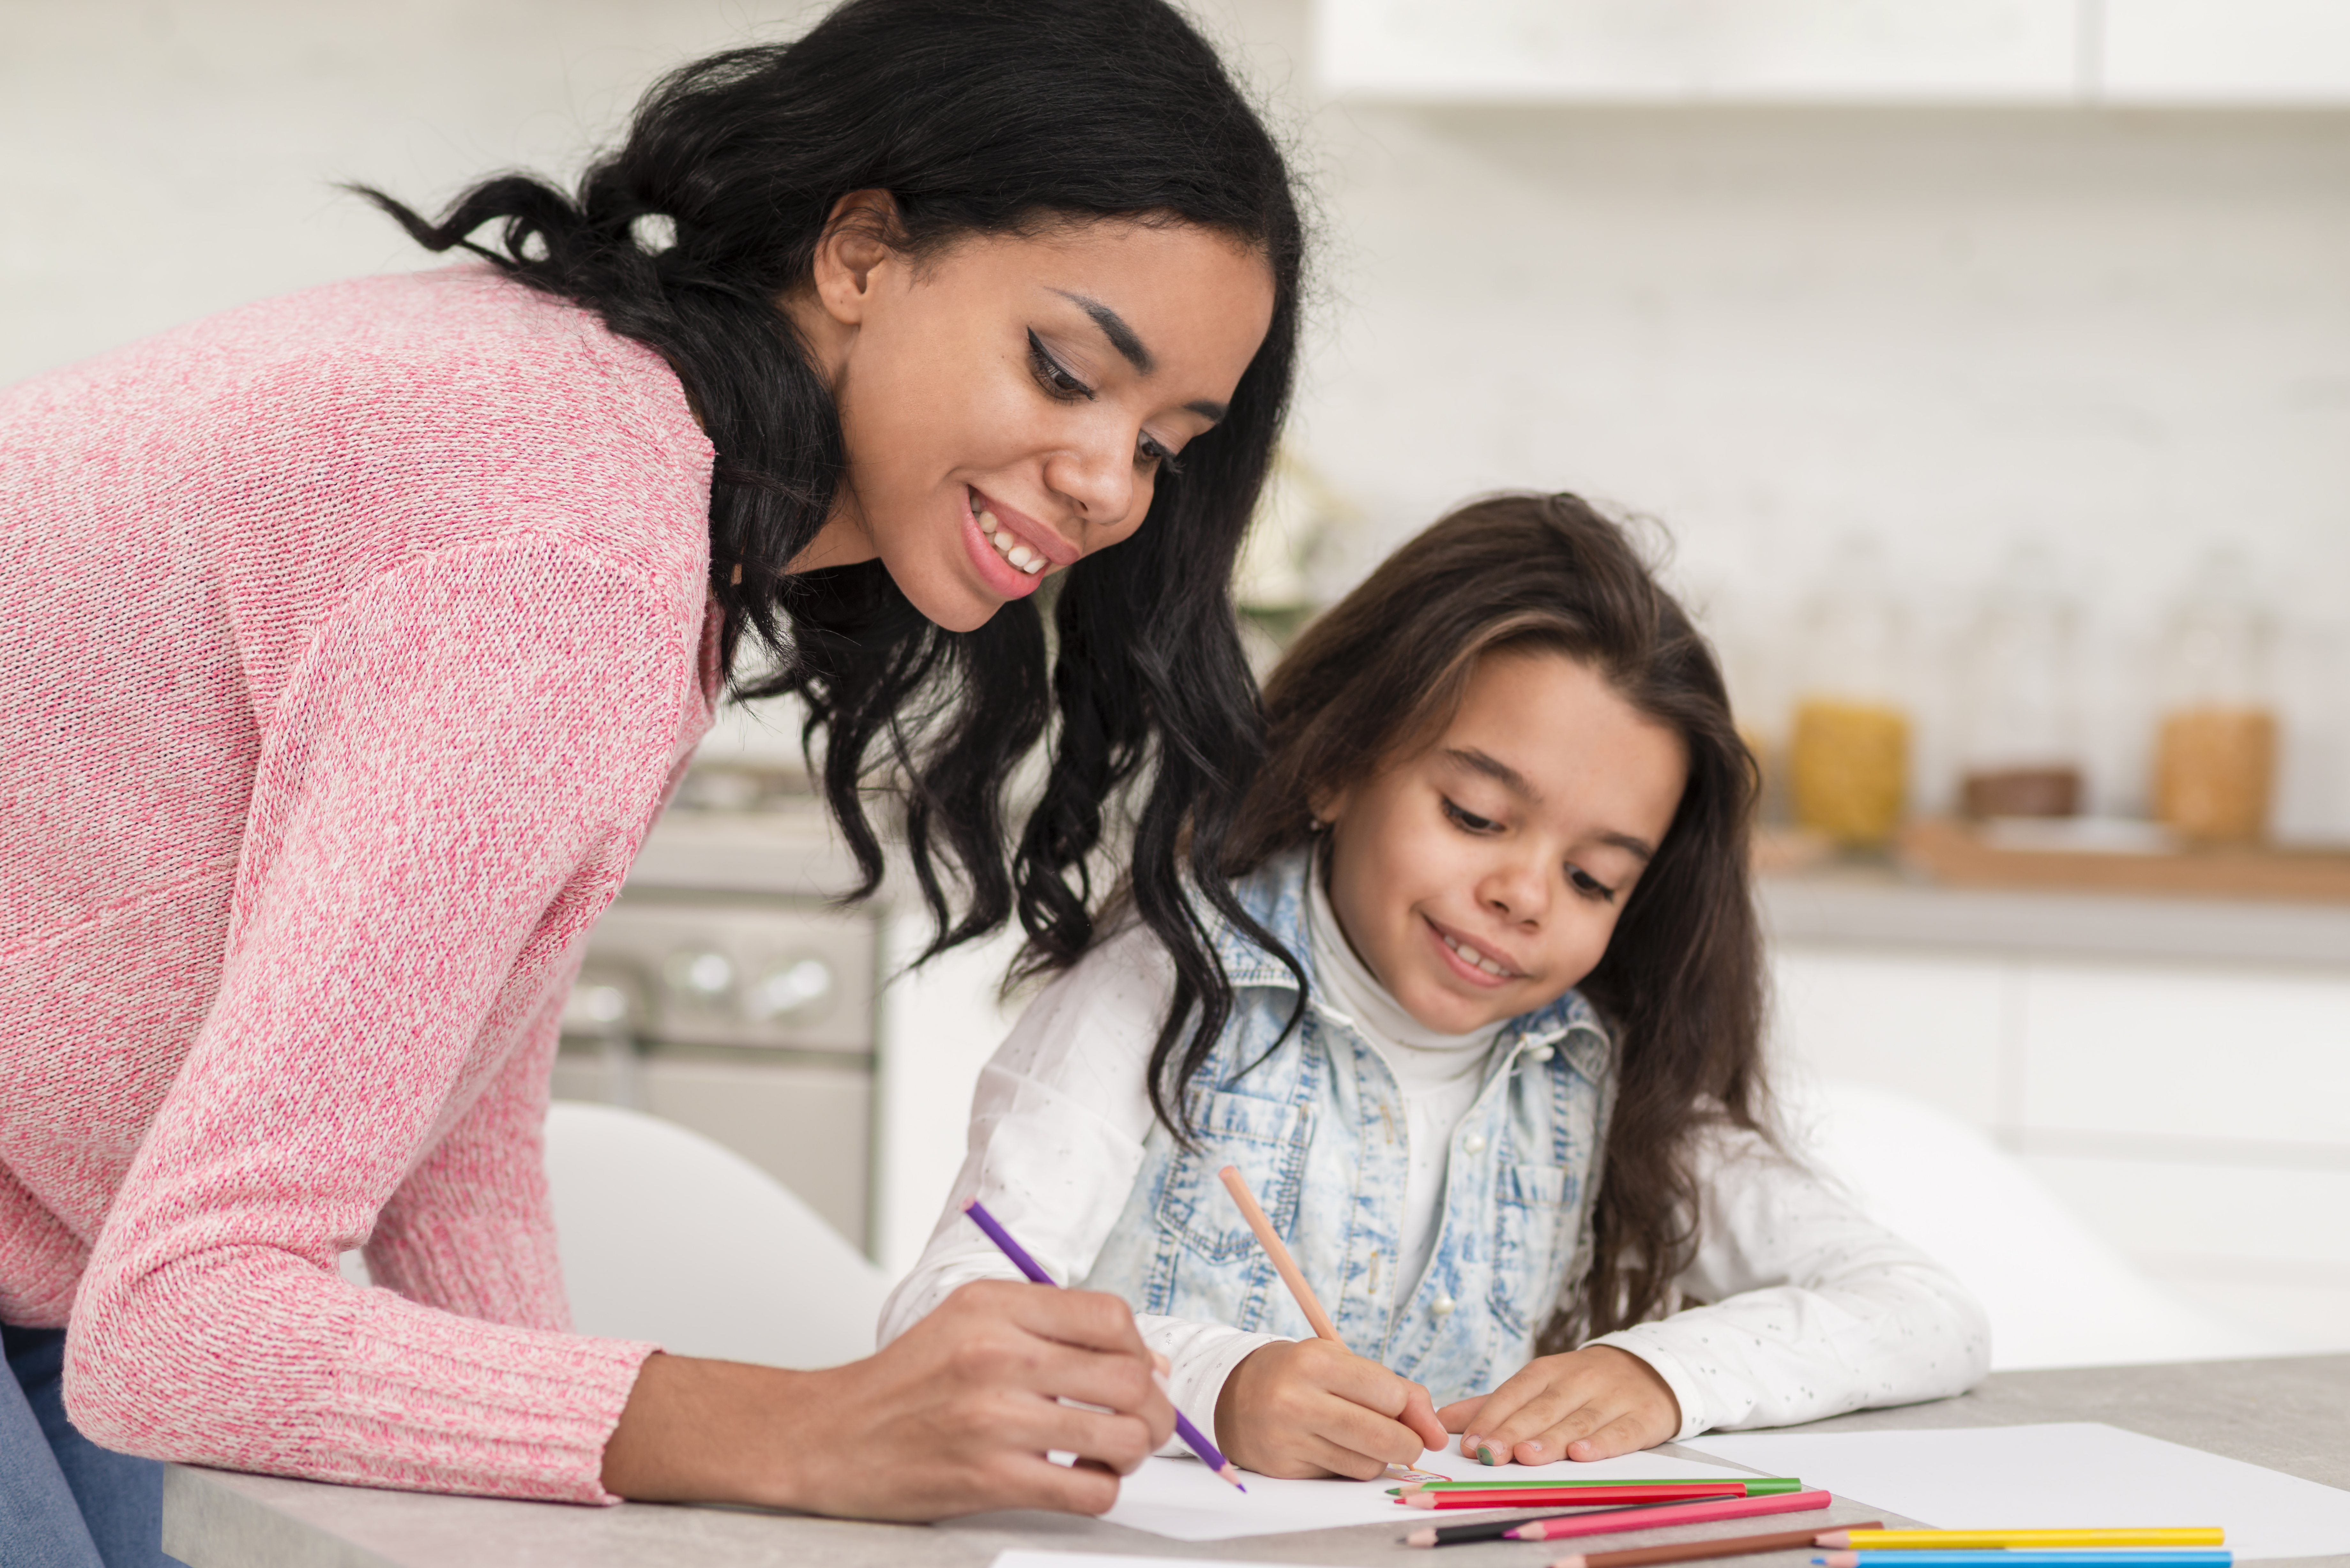 mother helping daughter to color with colored pencils